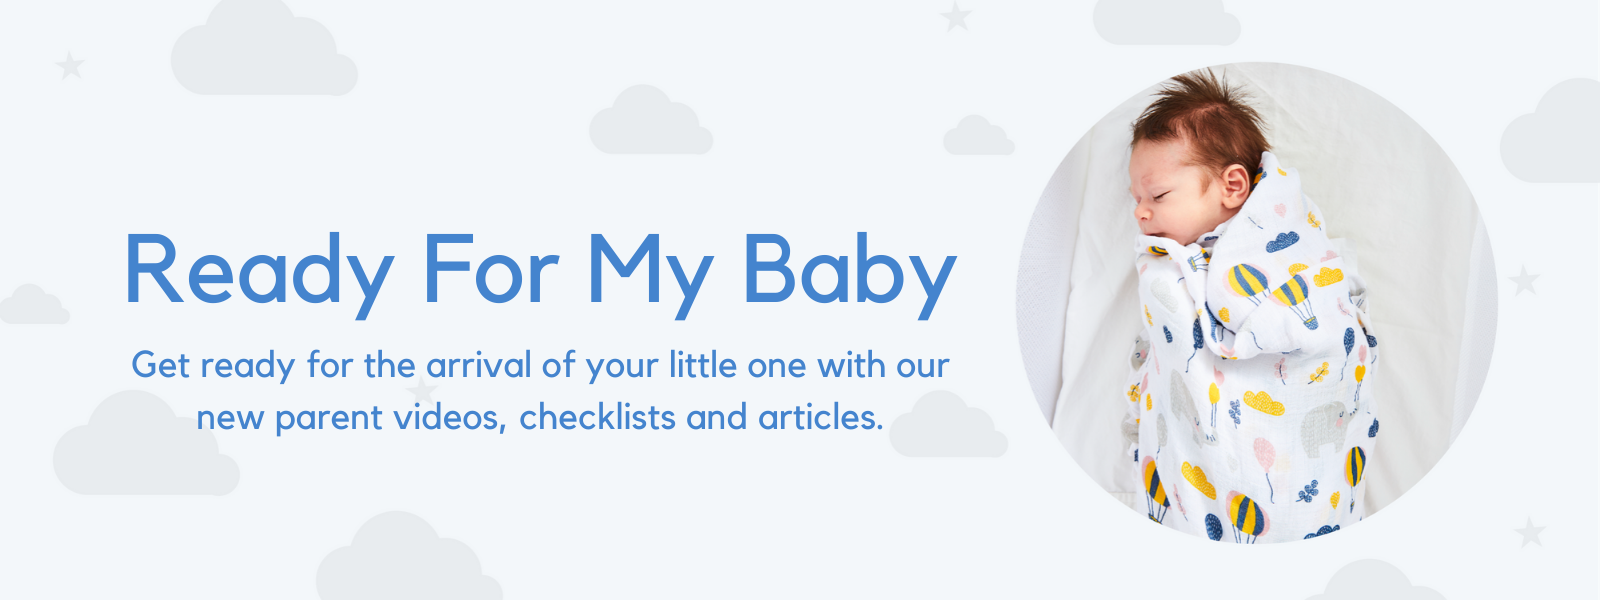 ready for my baby blog everything you need to know before your baby's arrival